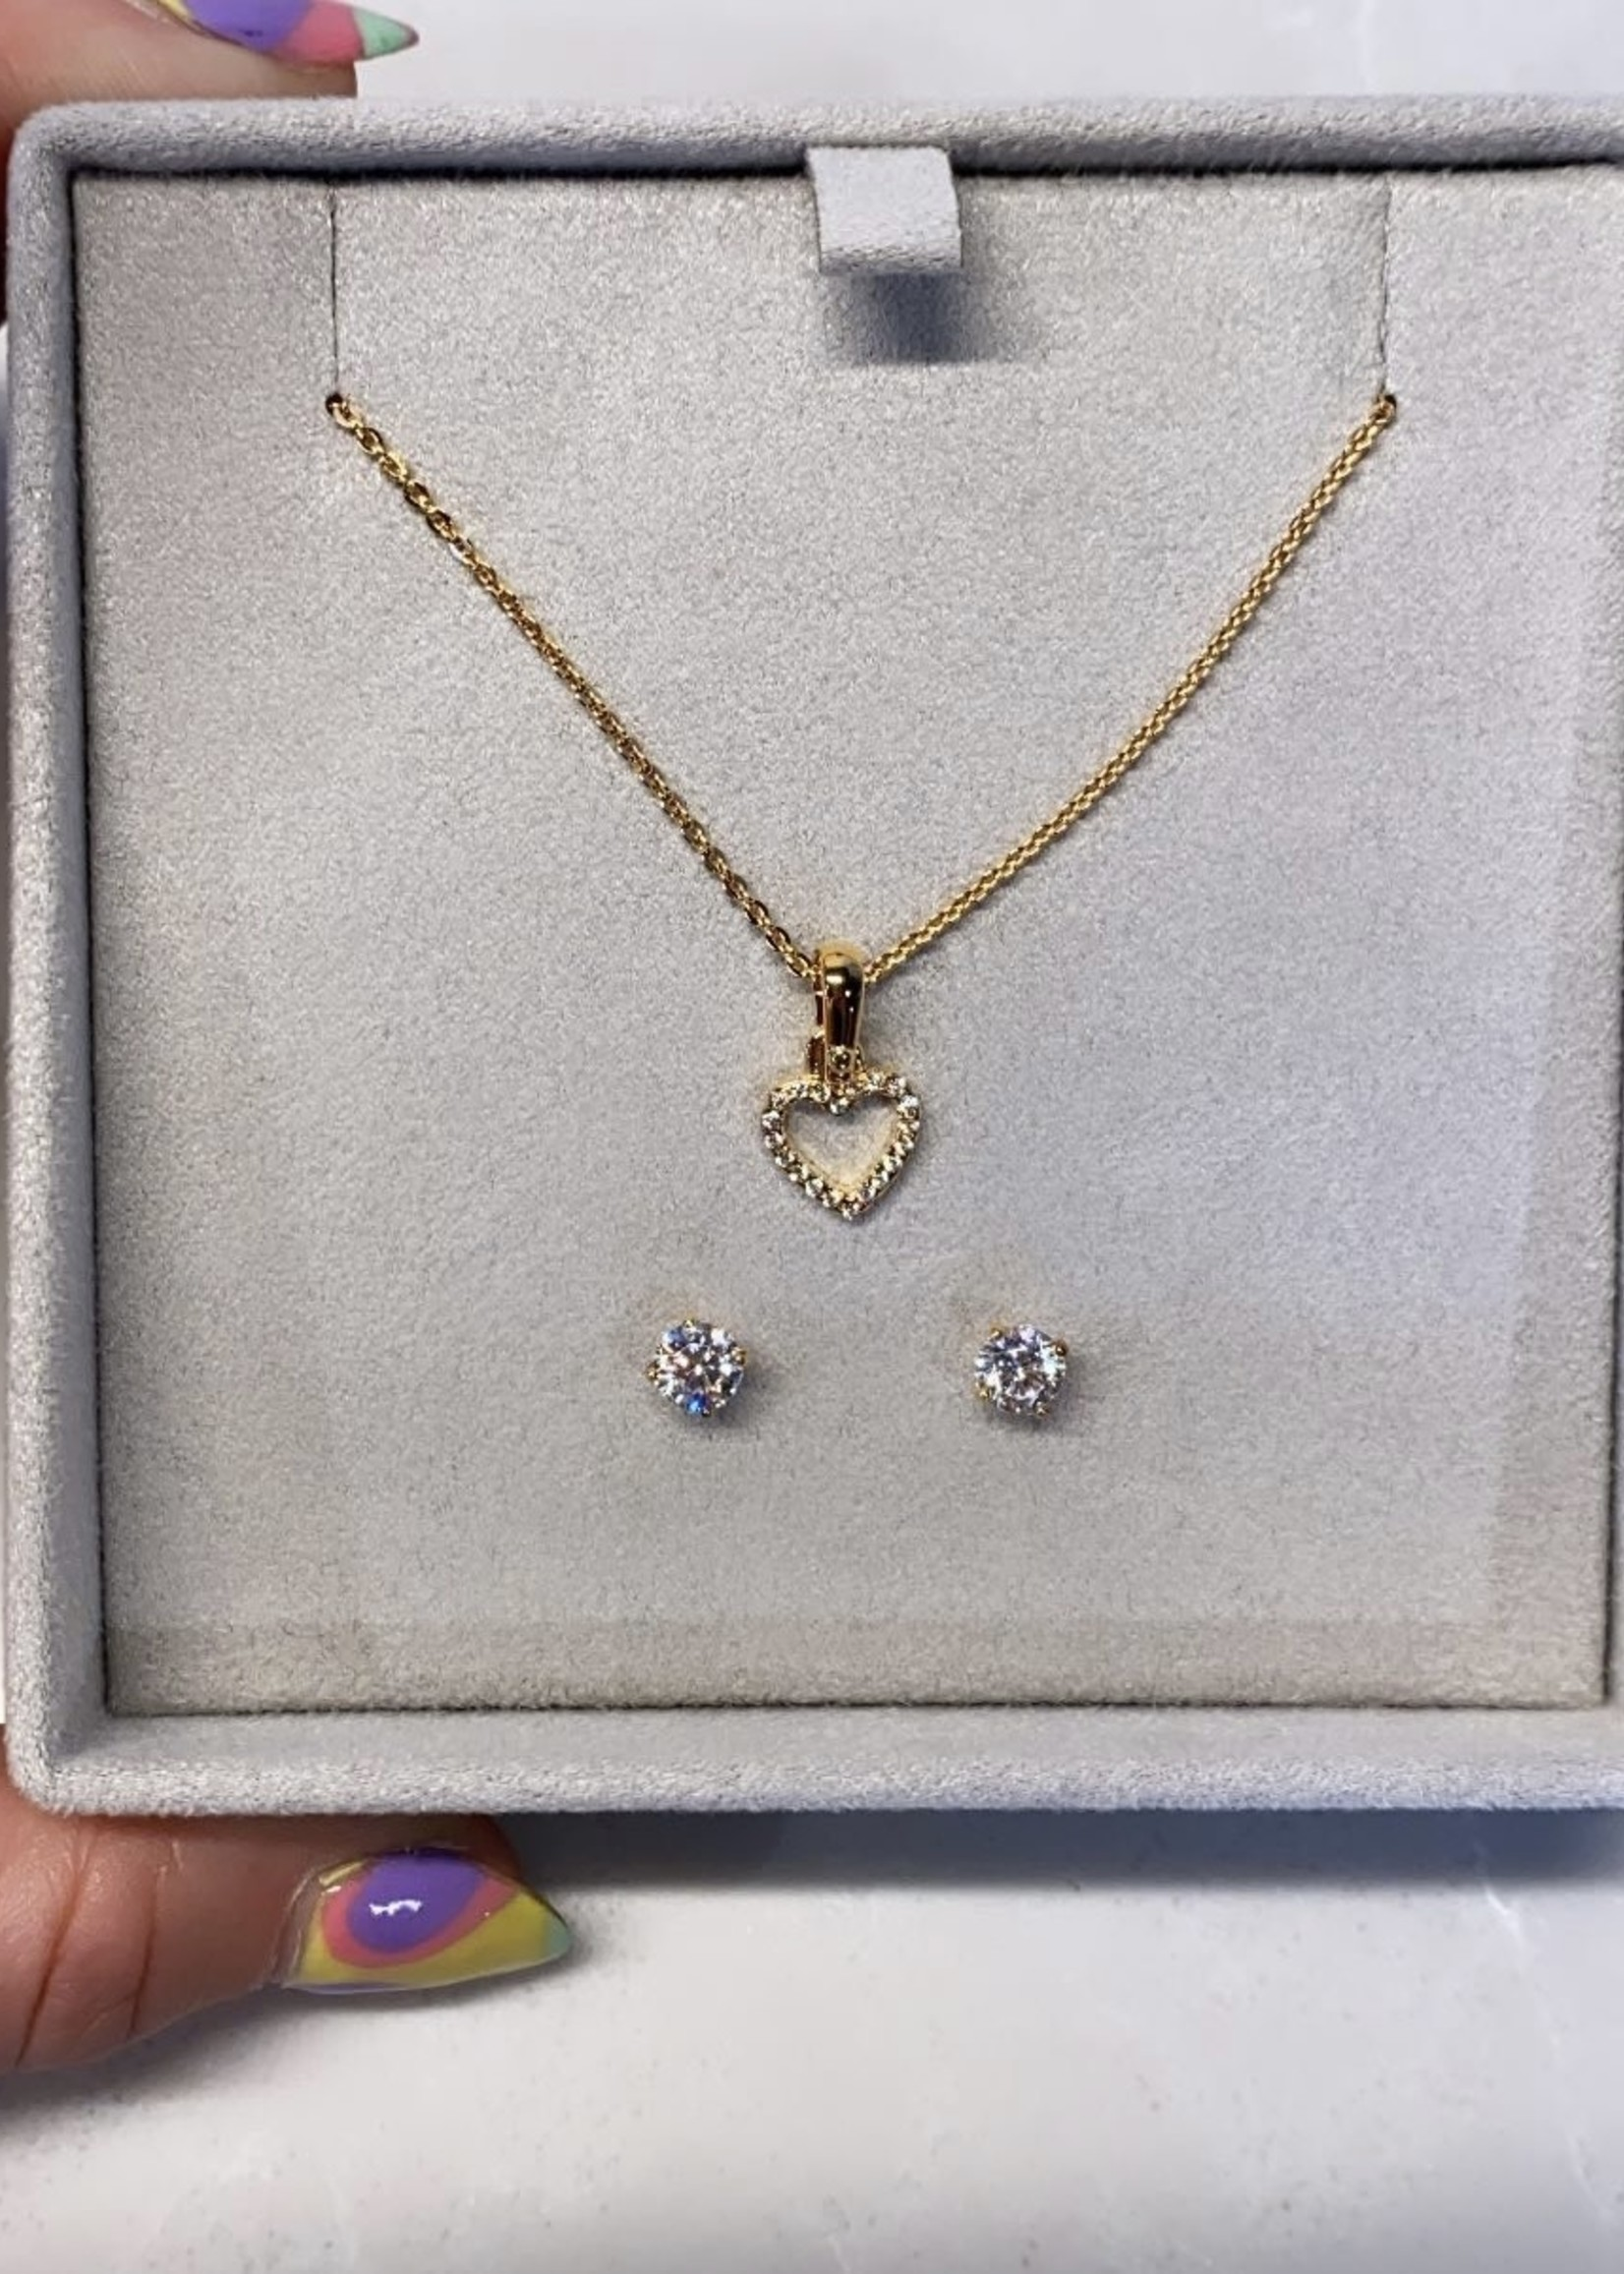 Michael Kors Gold Tone Sterling Silver Jewelry Set (Retail: $175)